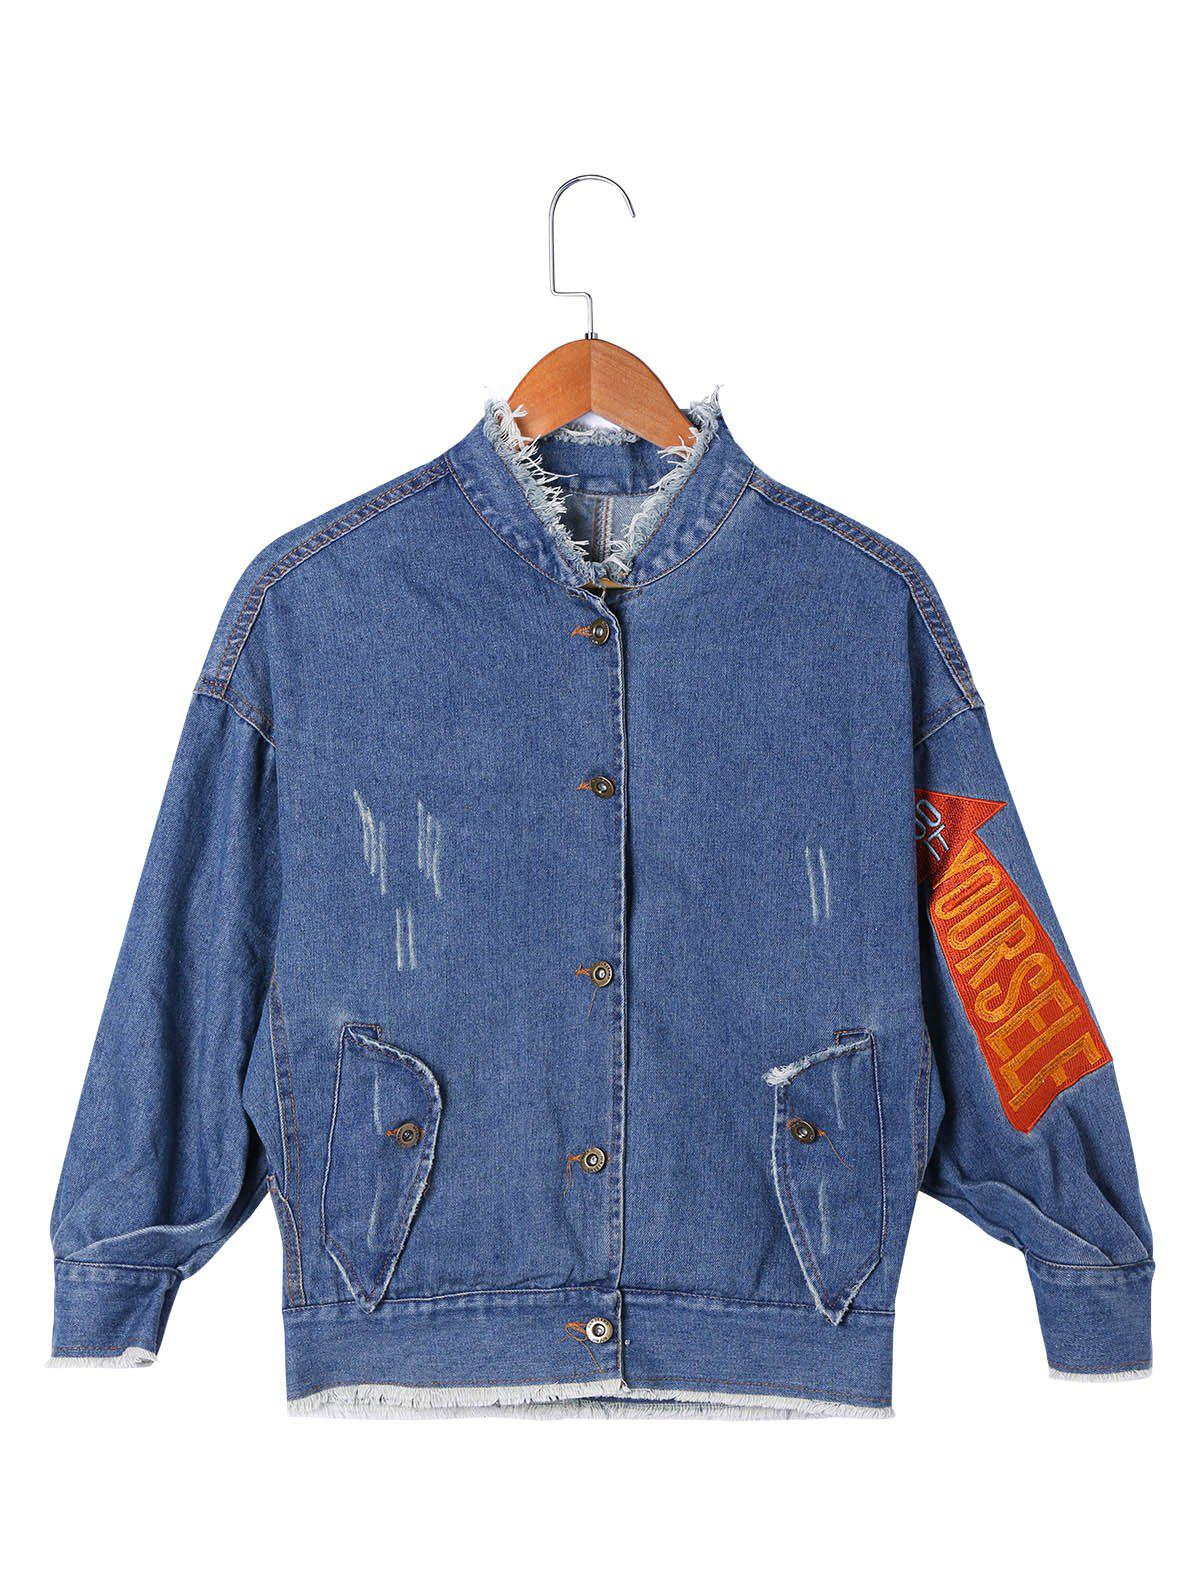 Applique Frayed Denim Jacket - DENIM BLUE M